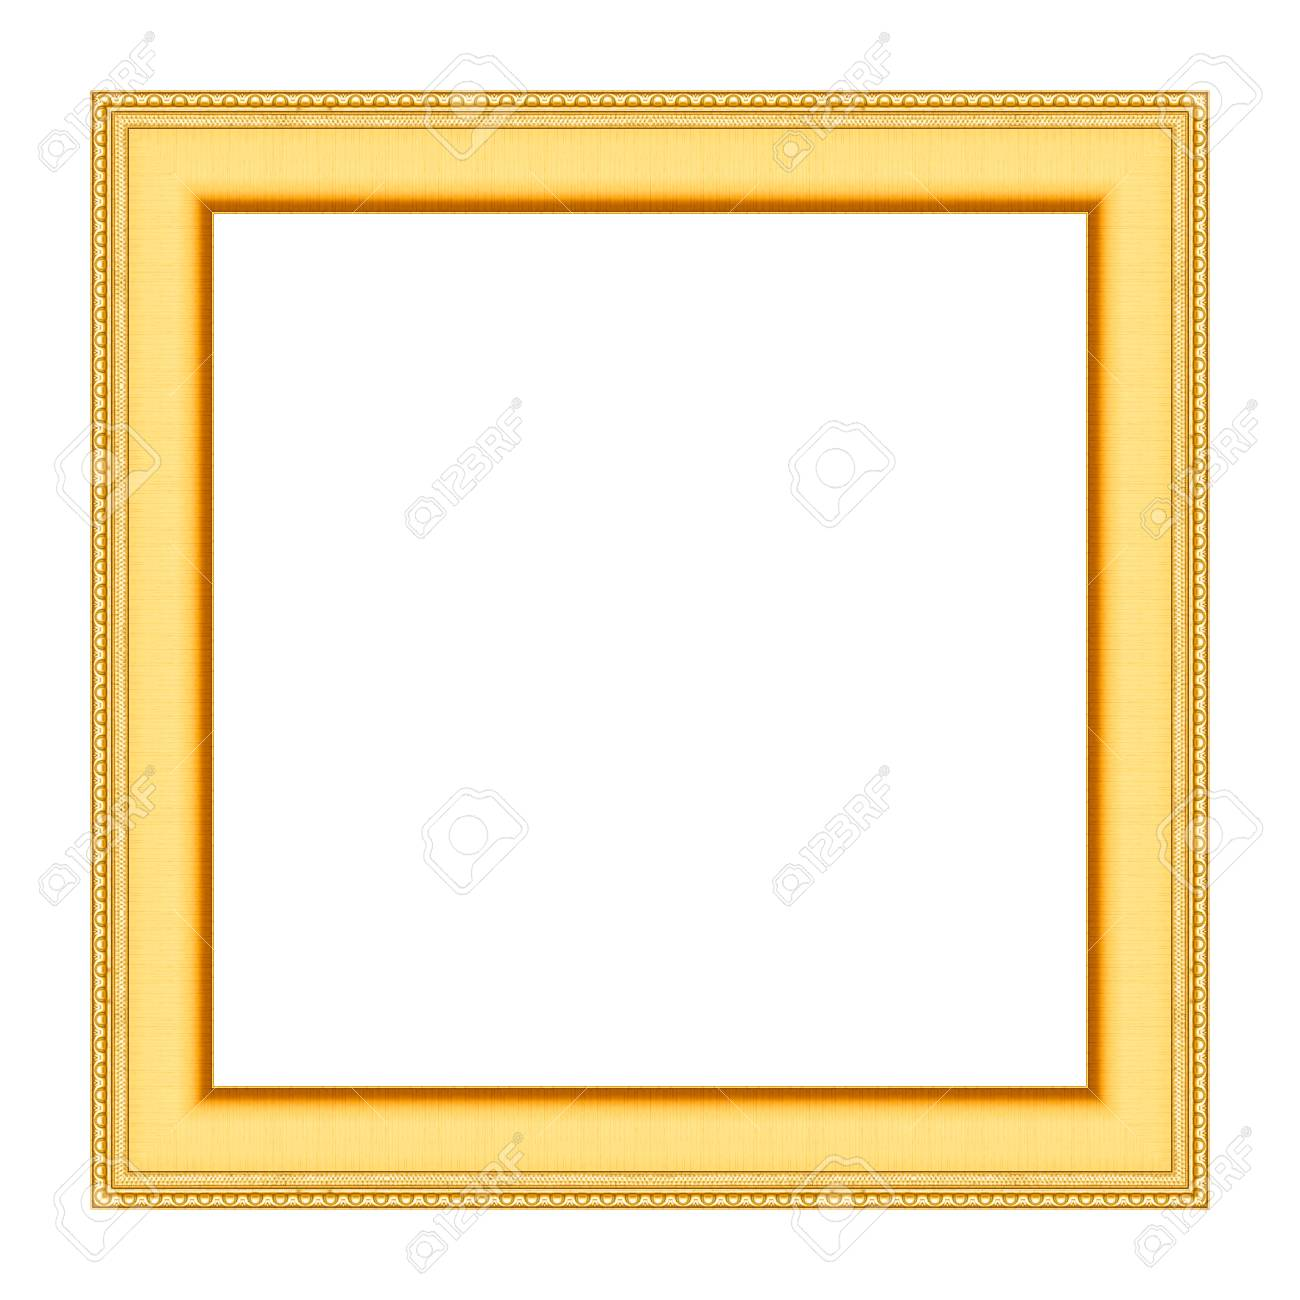 d004a45e044 Old Antique Gold Frame Isolated On White Background